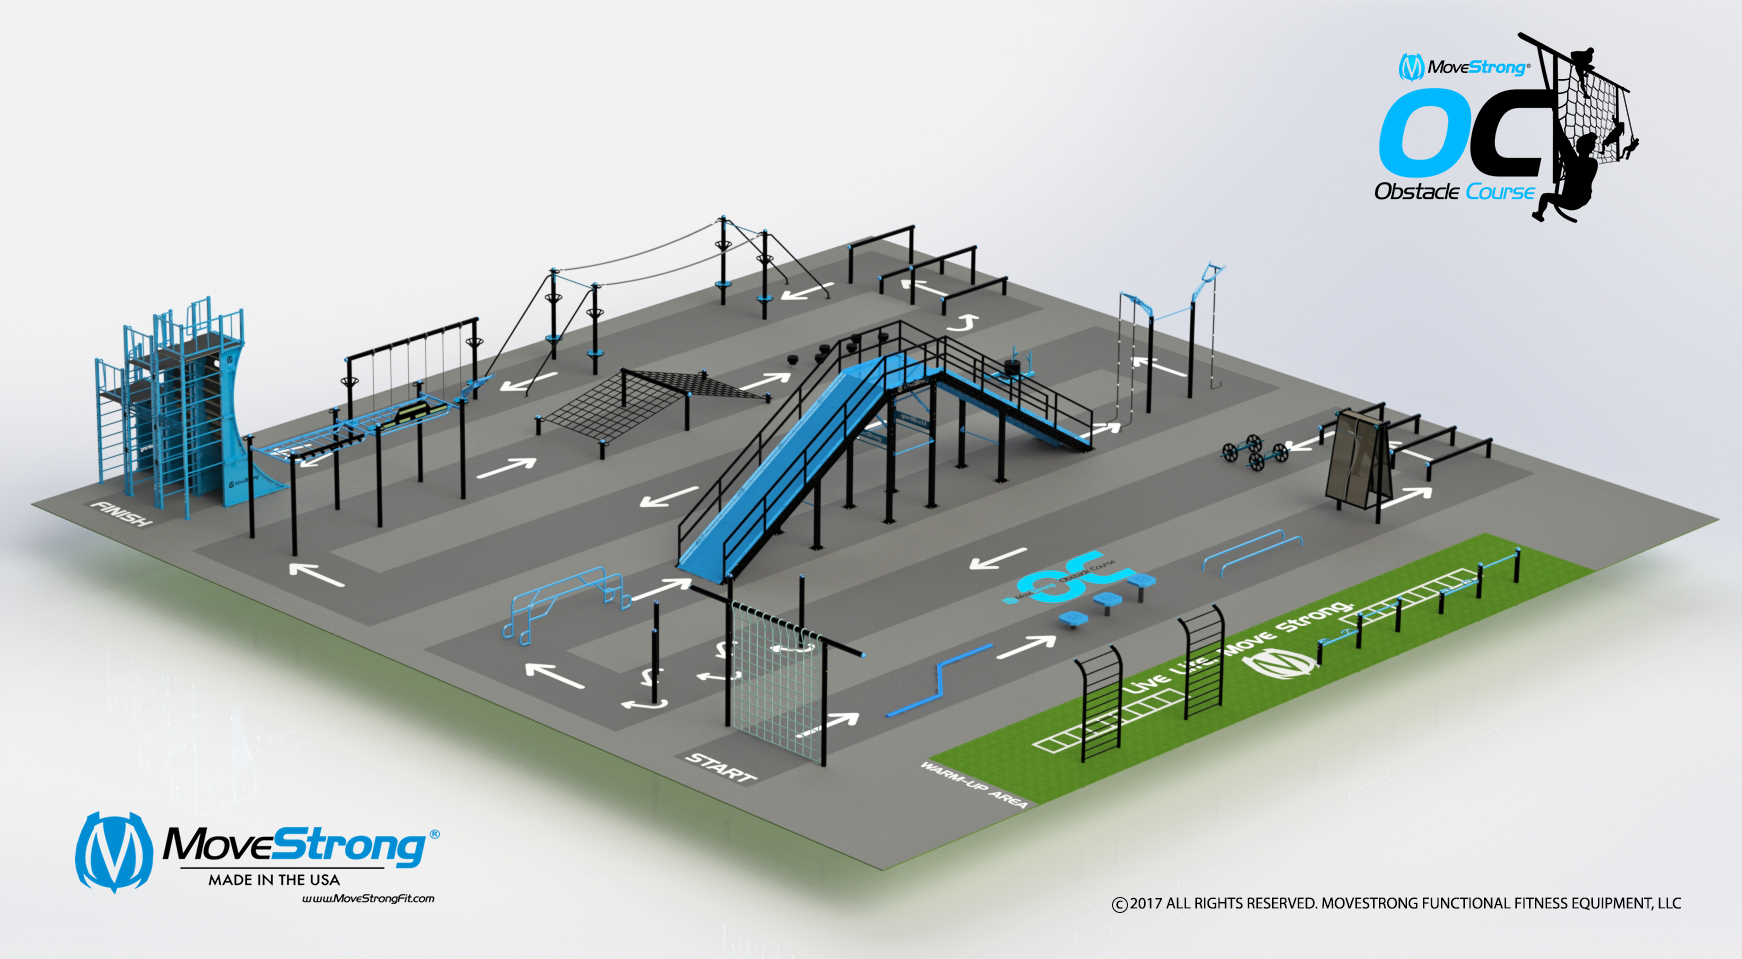 Scale Obstacle Course In Size, Shape, and Specific to Desired Training Needs For Users